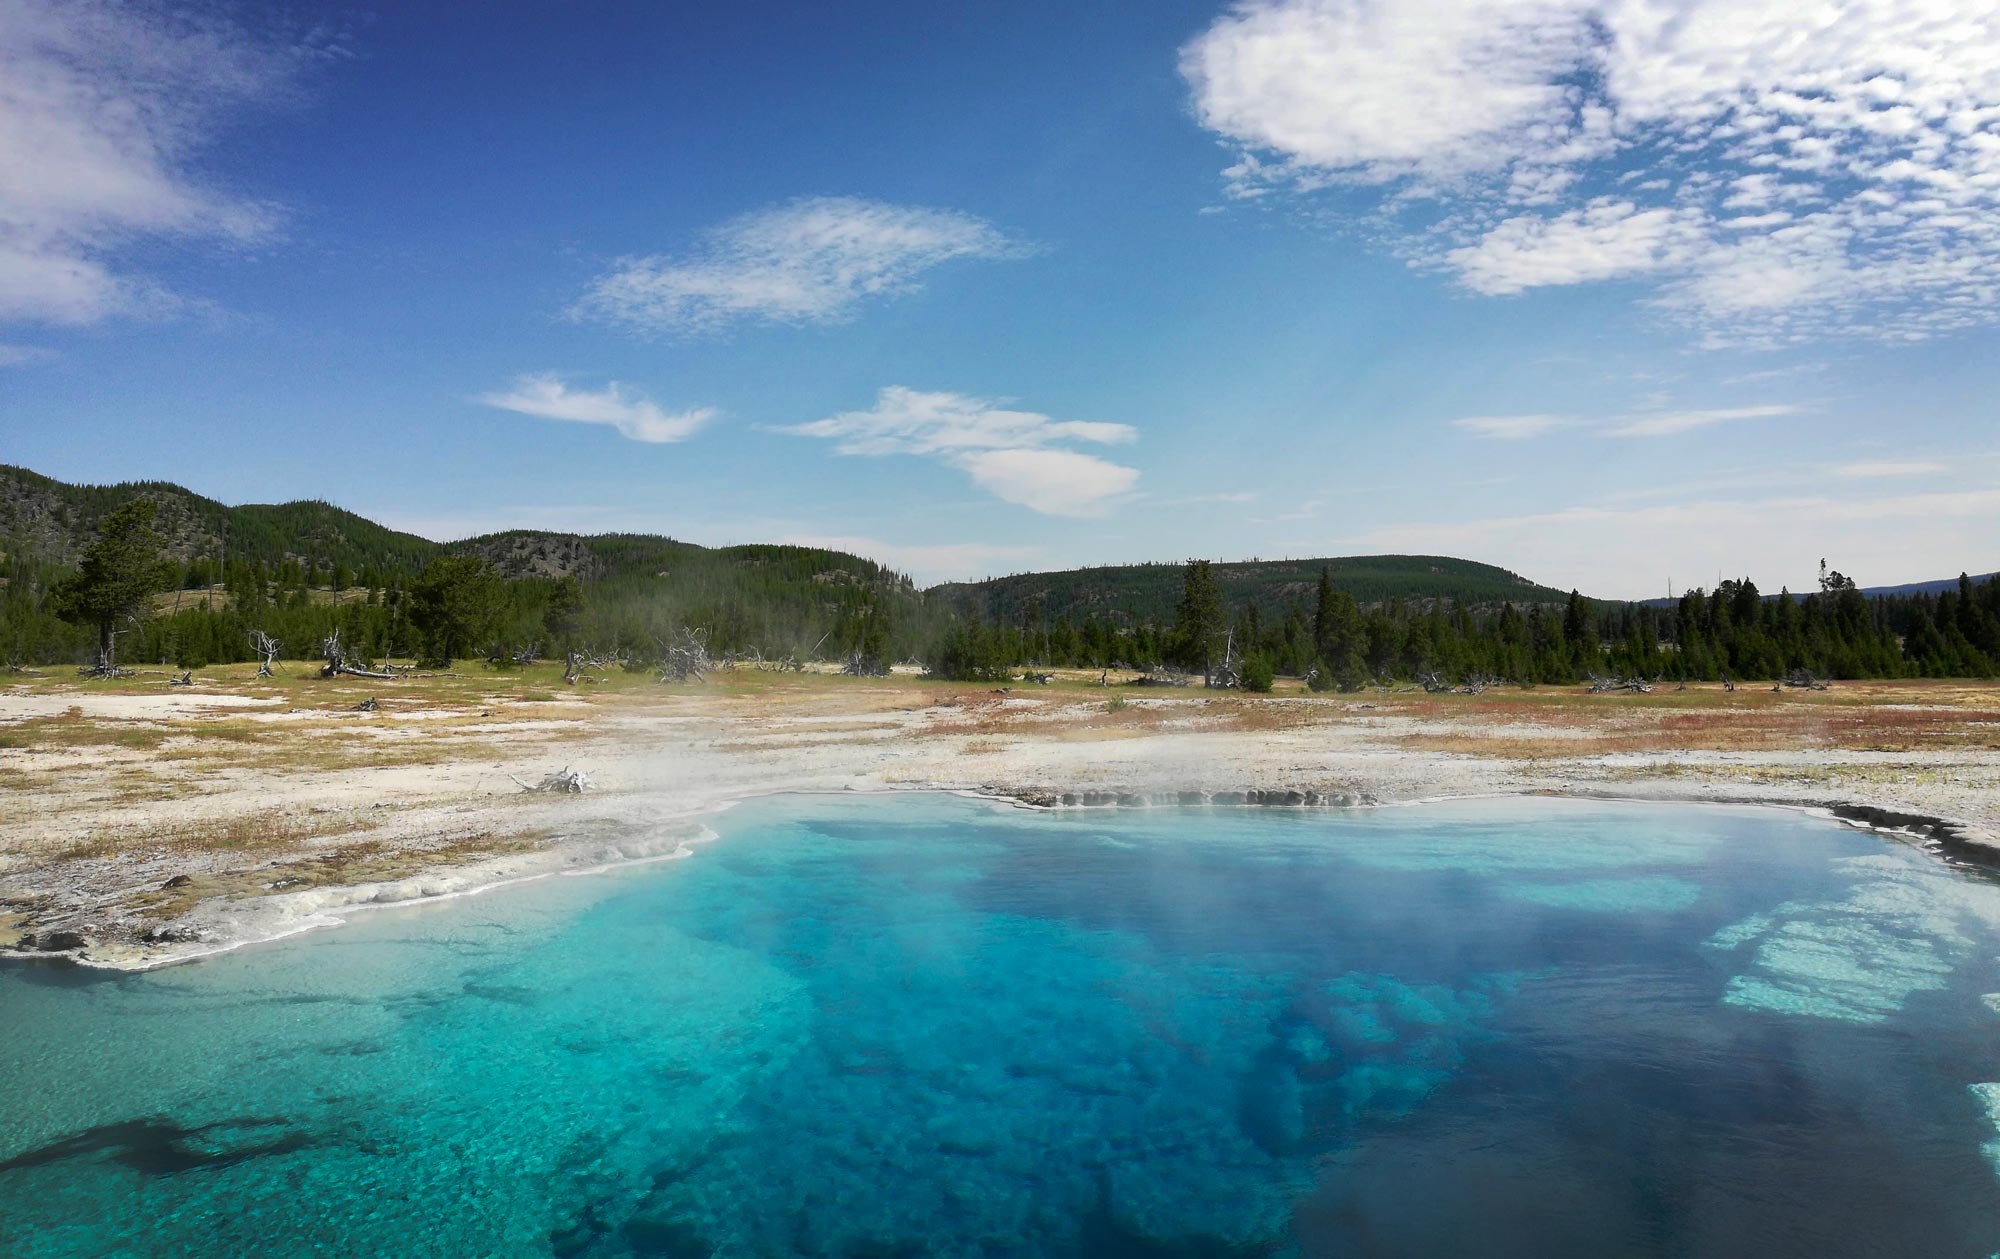 Sapphire Pool in Biscuit Basin in Yellowstone National Park